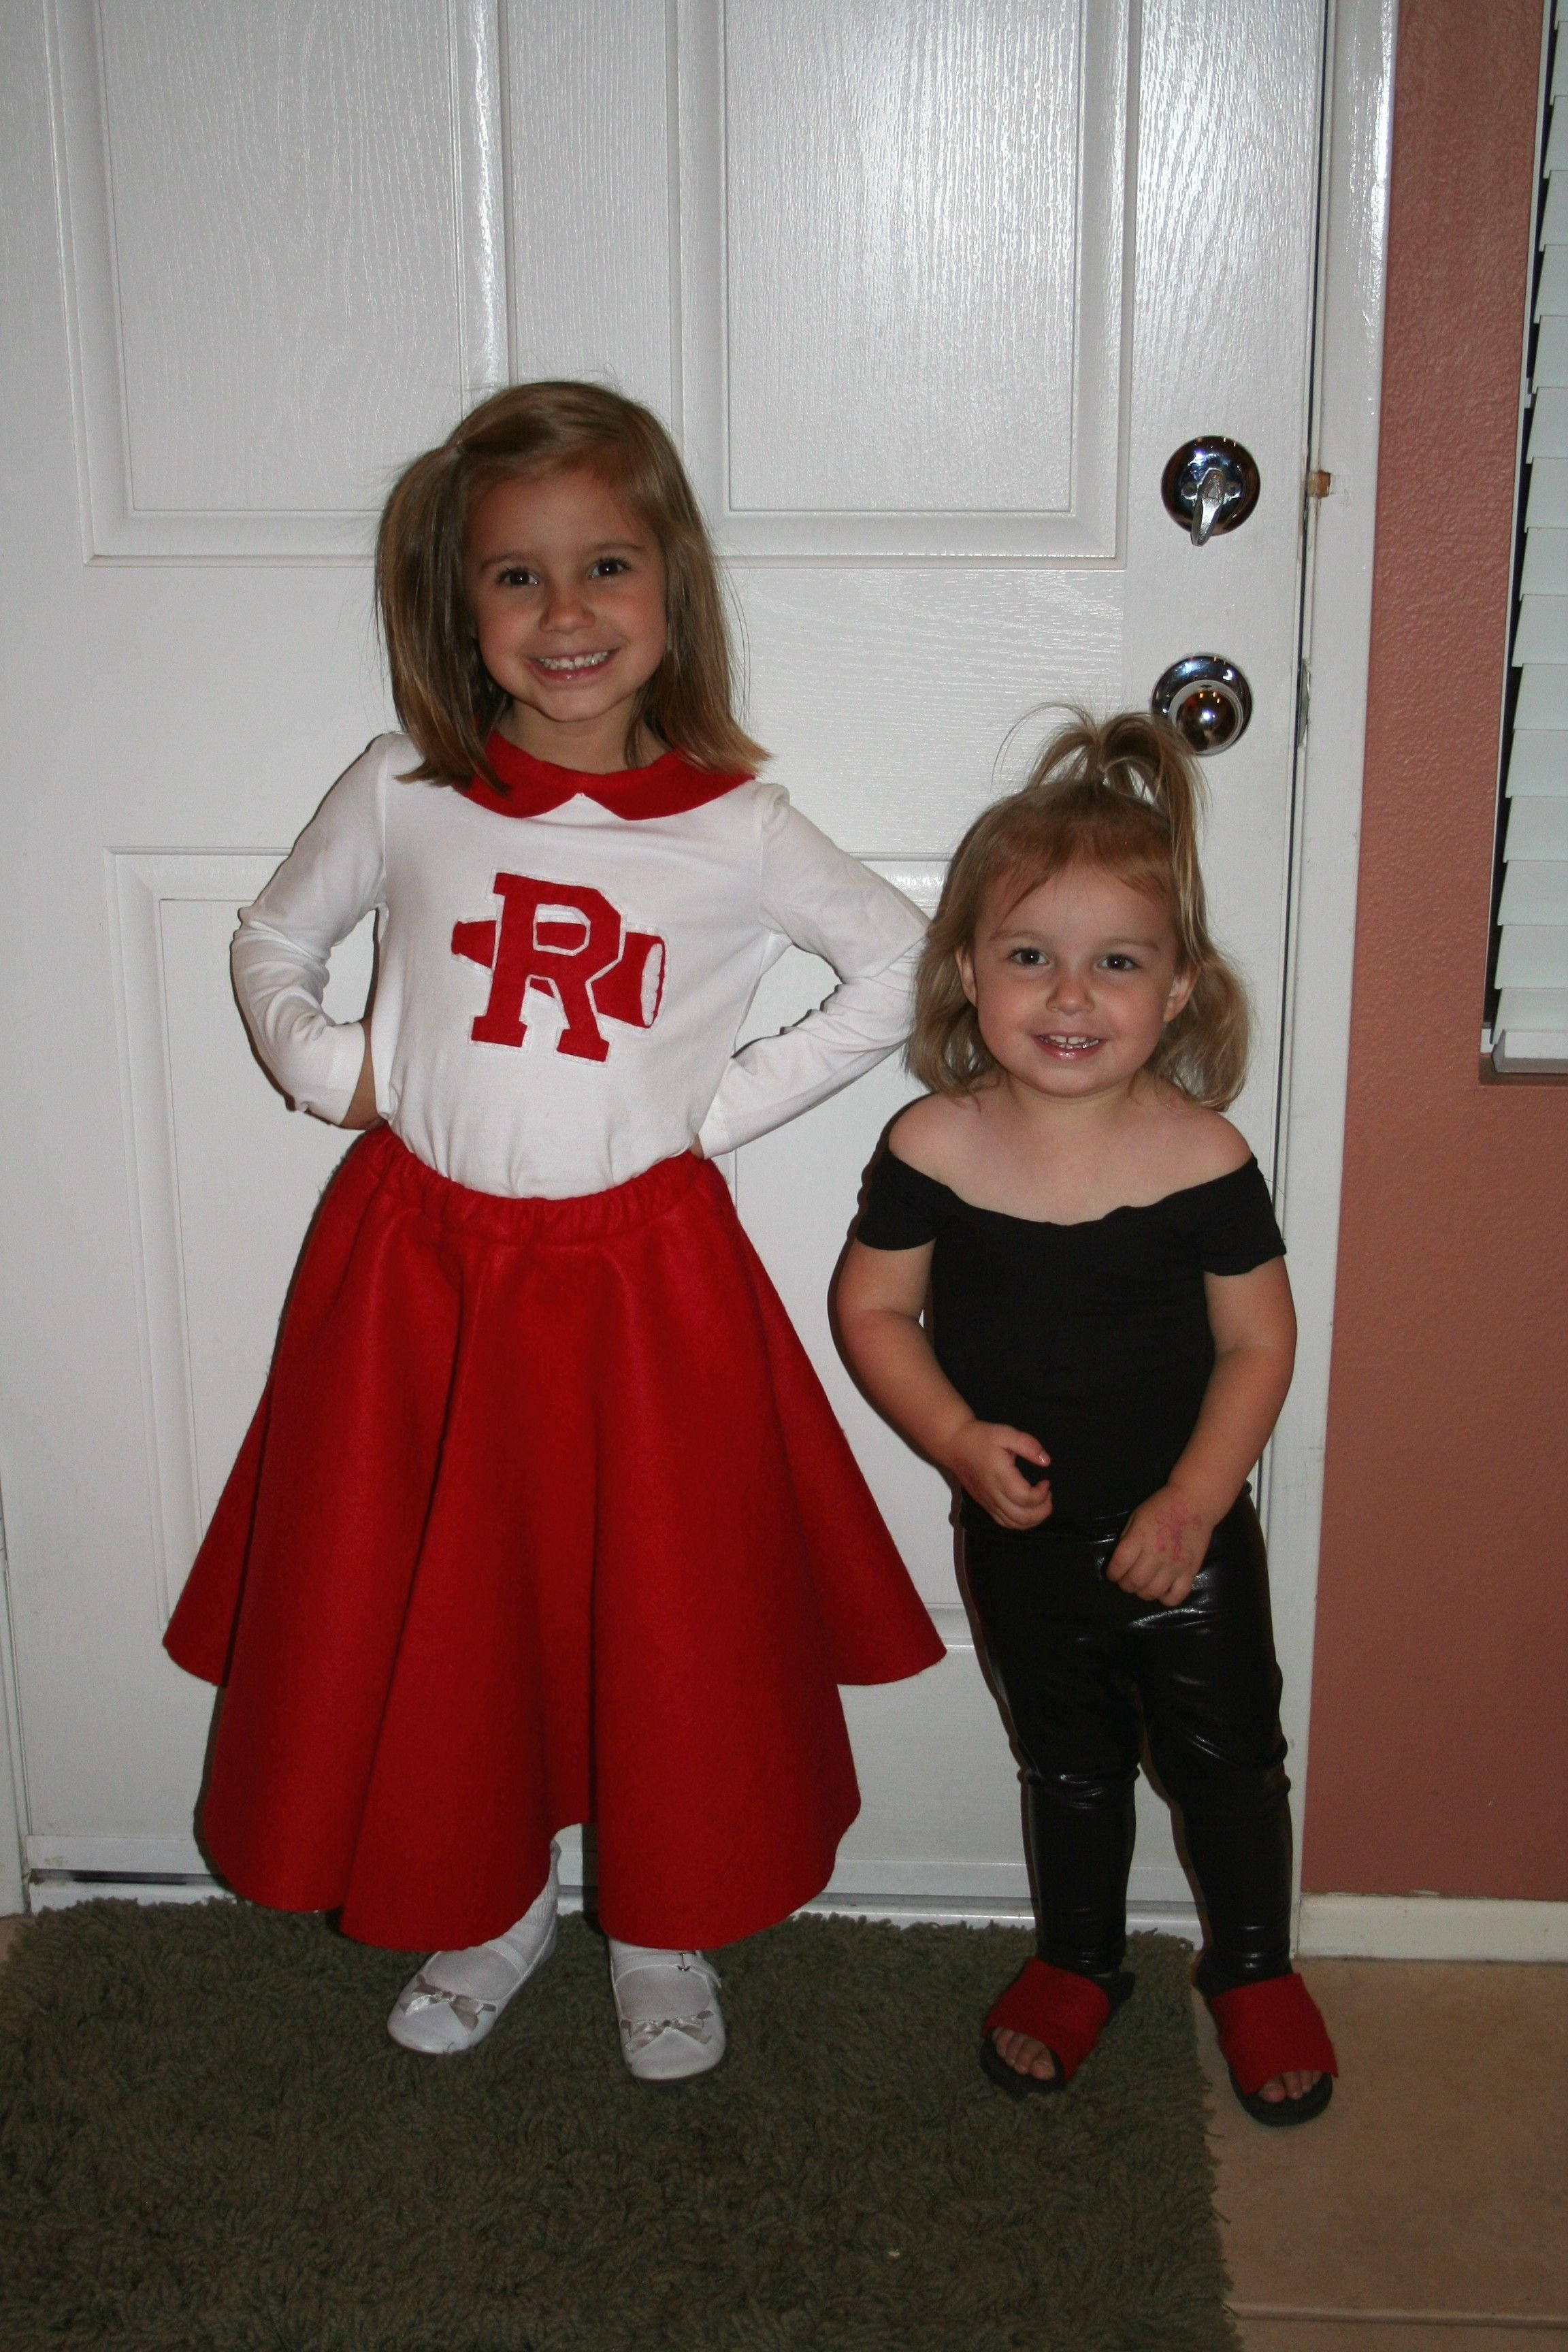 10 Cute Costume Ideas For 2 Girls good and bad sandy halloween costume for 2 girls halloween pop 1 2020